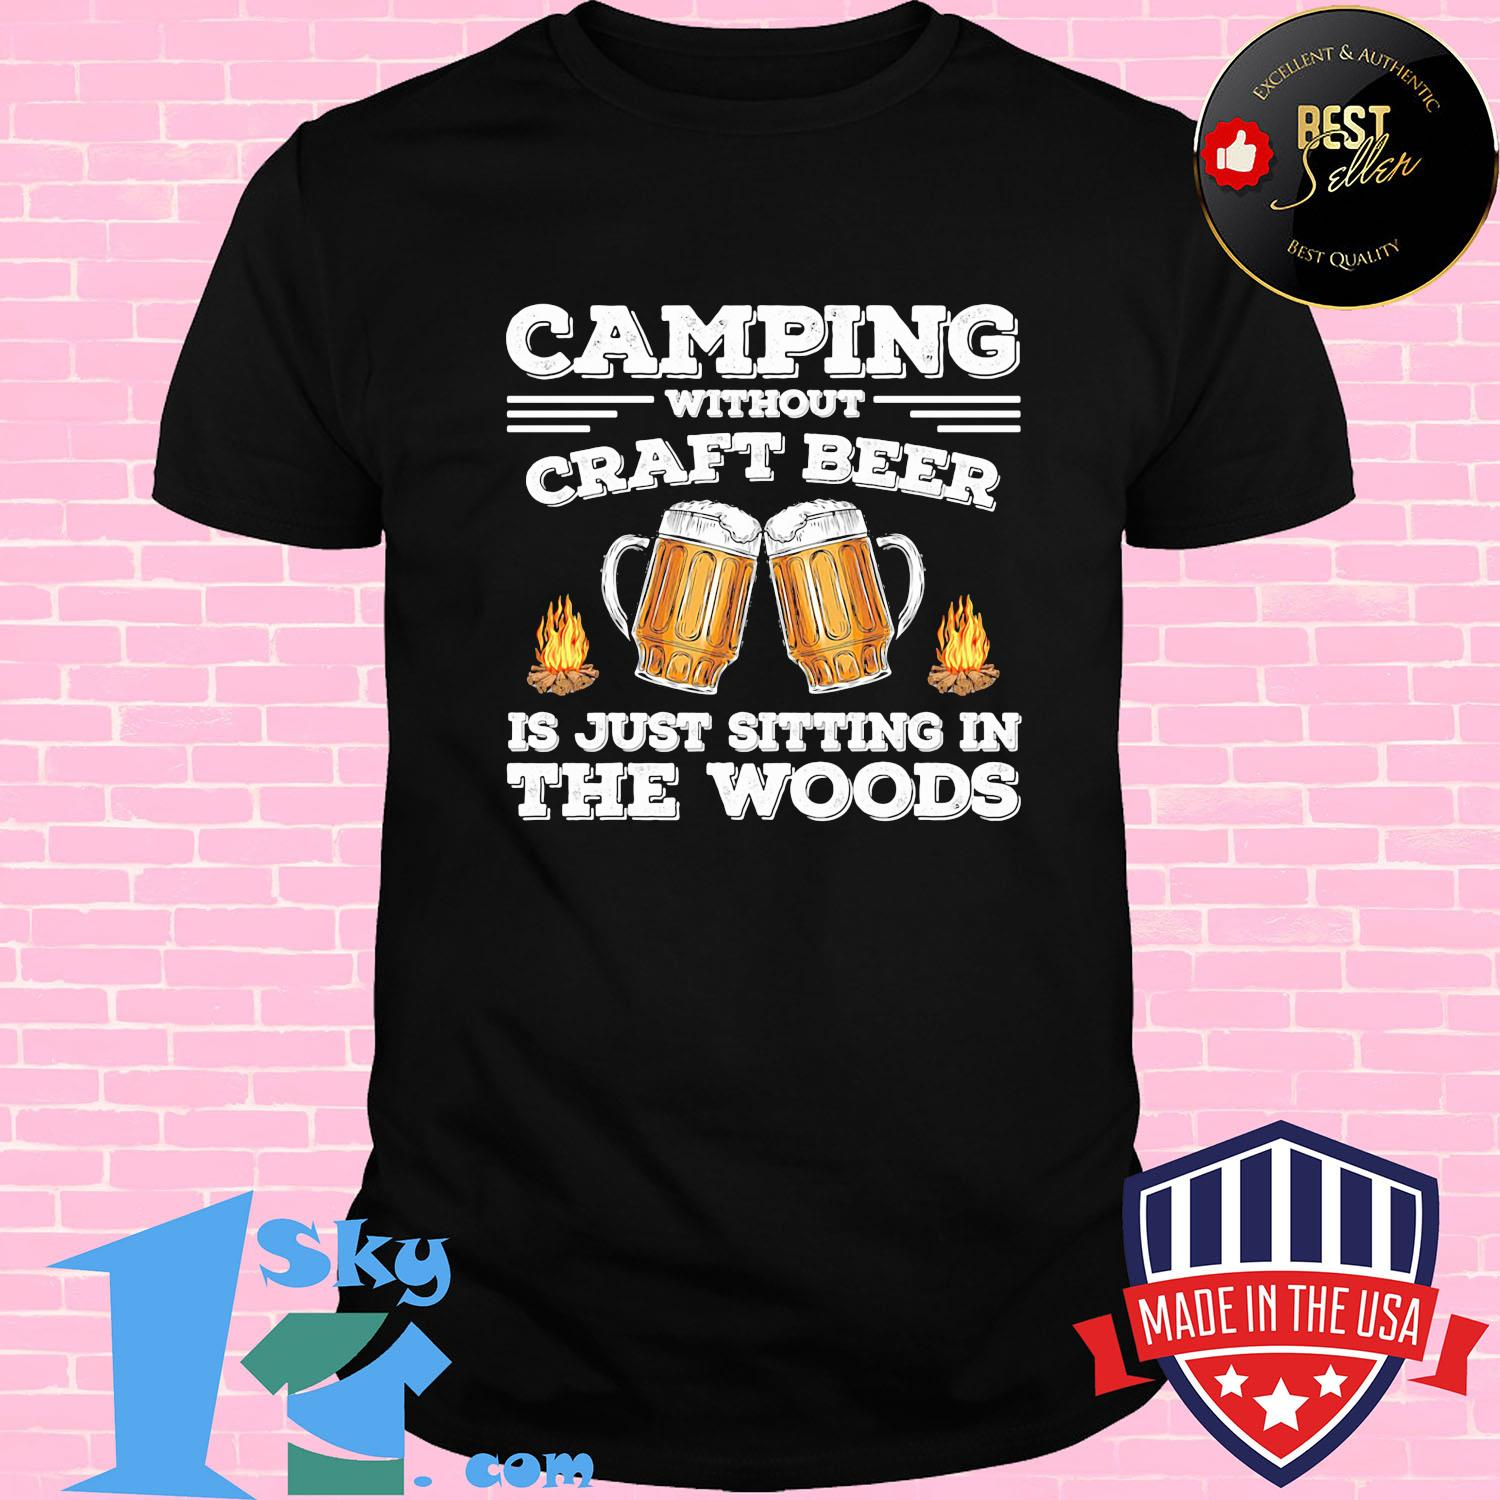 Camping without craft beer is just sitting in the woods shirt